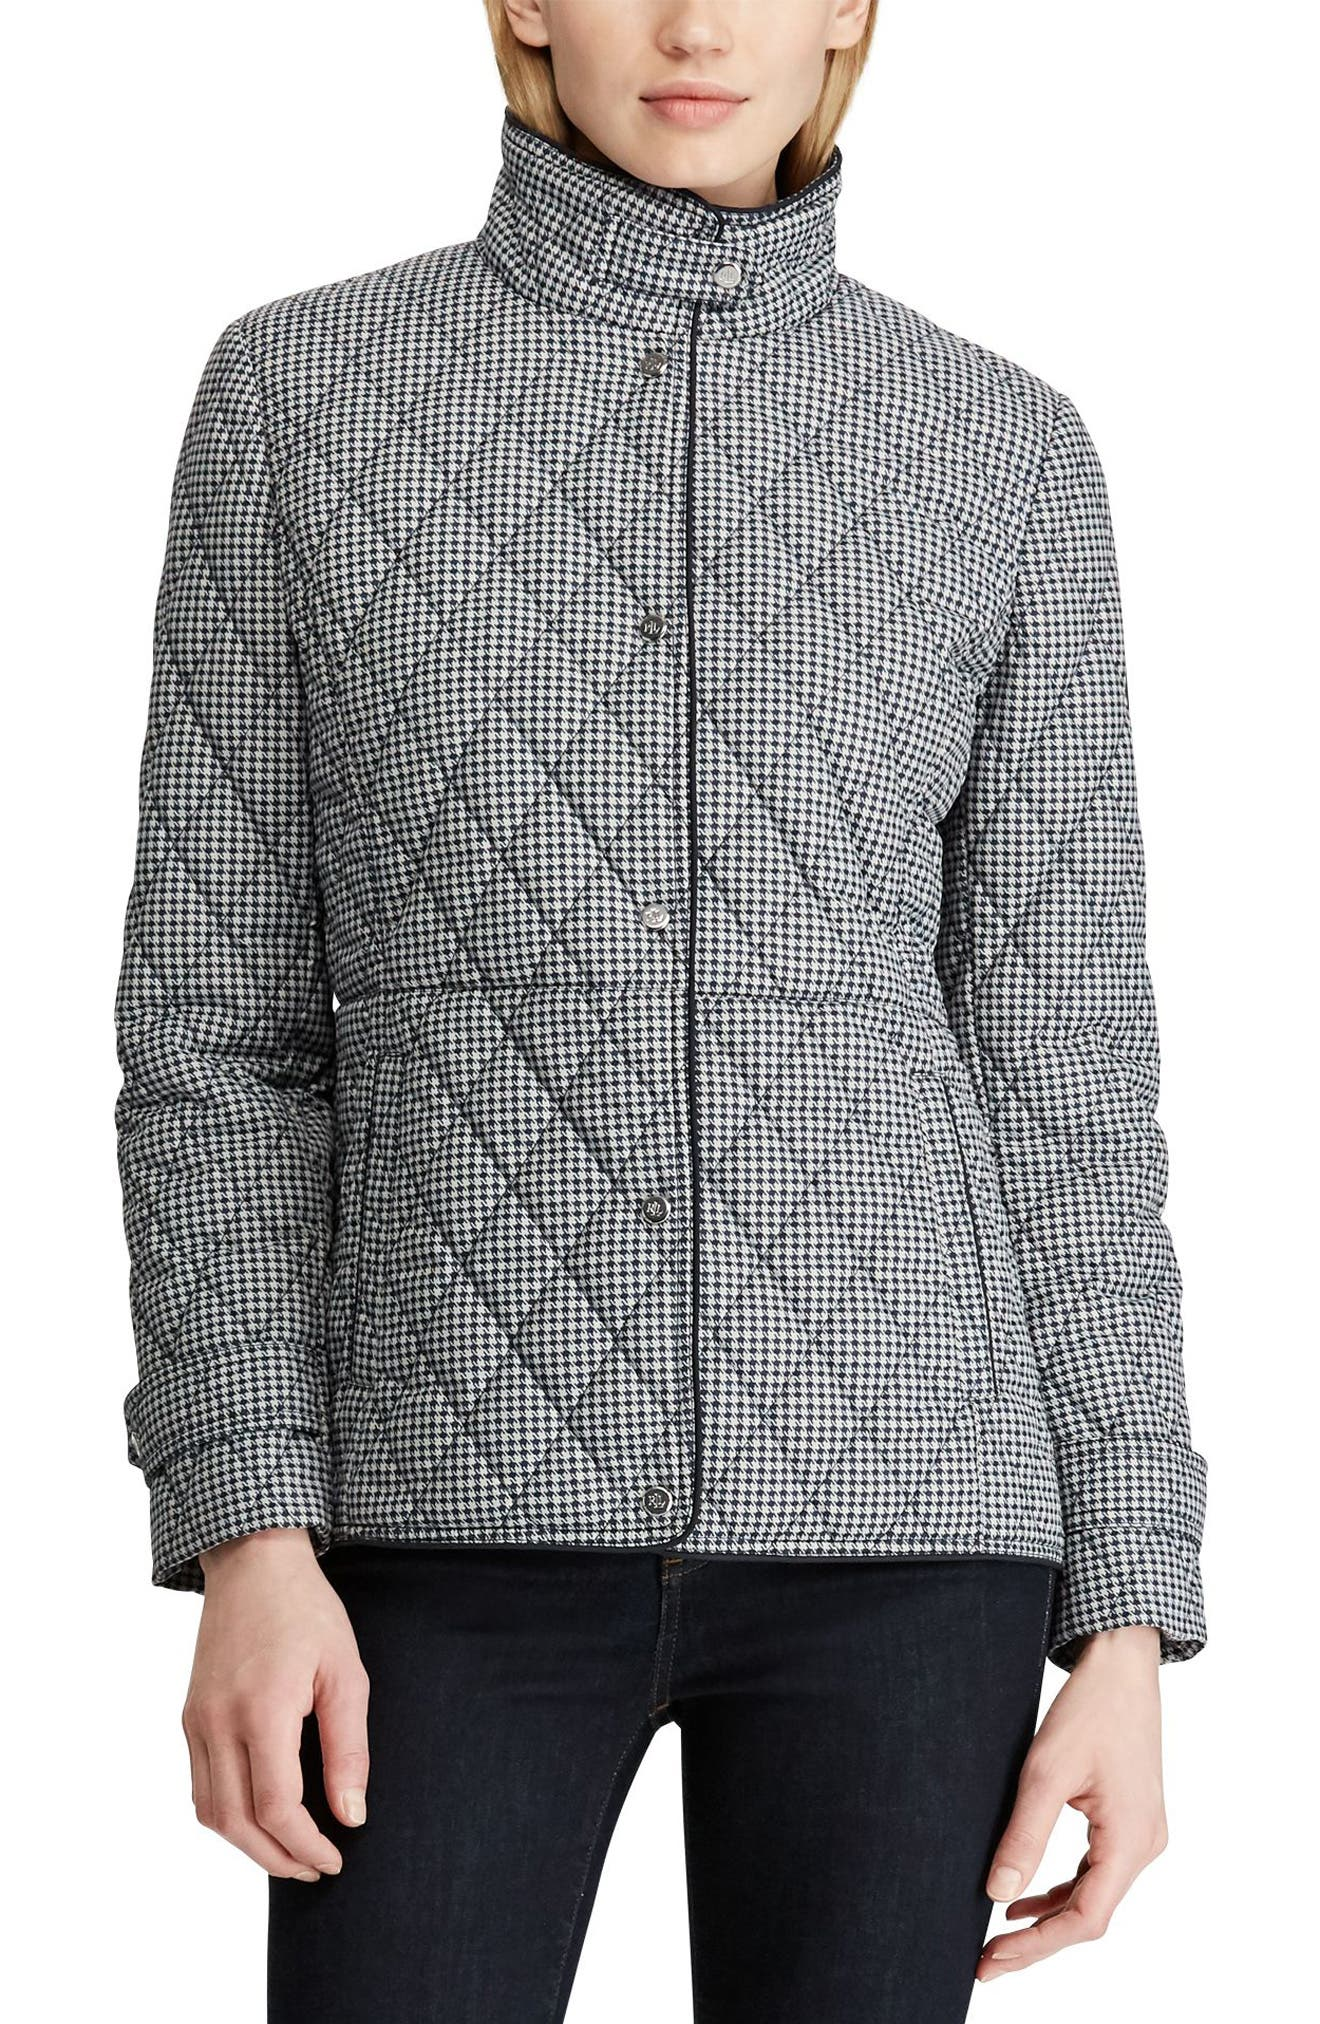 LAUREN RALPH LAUREN, Houndstooth Quilted Military Jacket, Main thumbnail 1, color, DK NAVY HOUNDSTOOTH